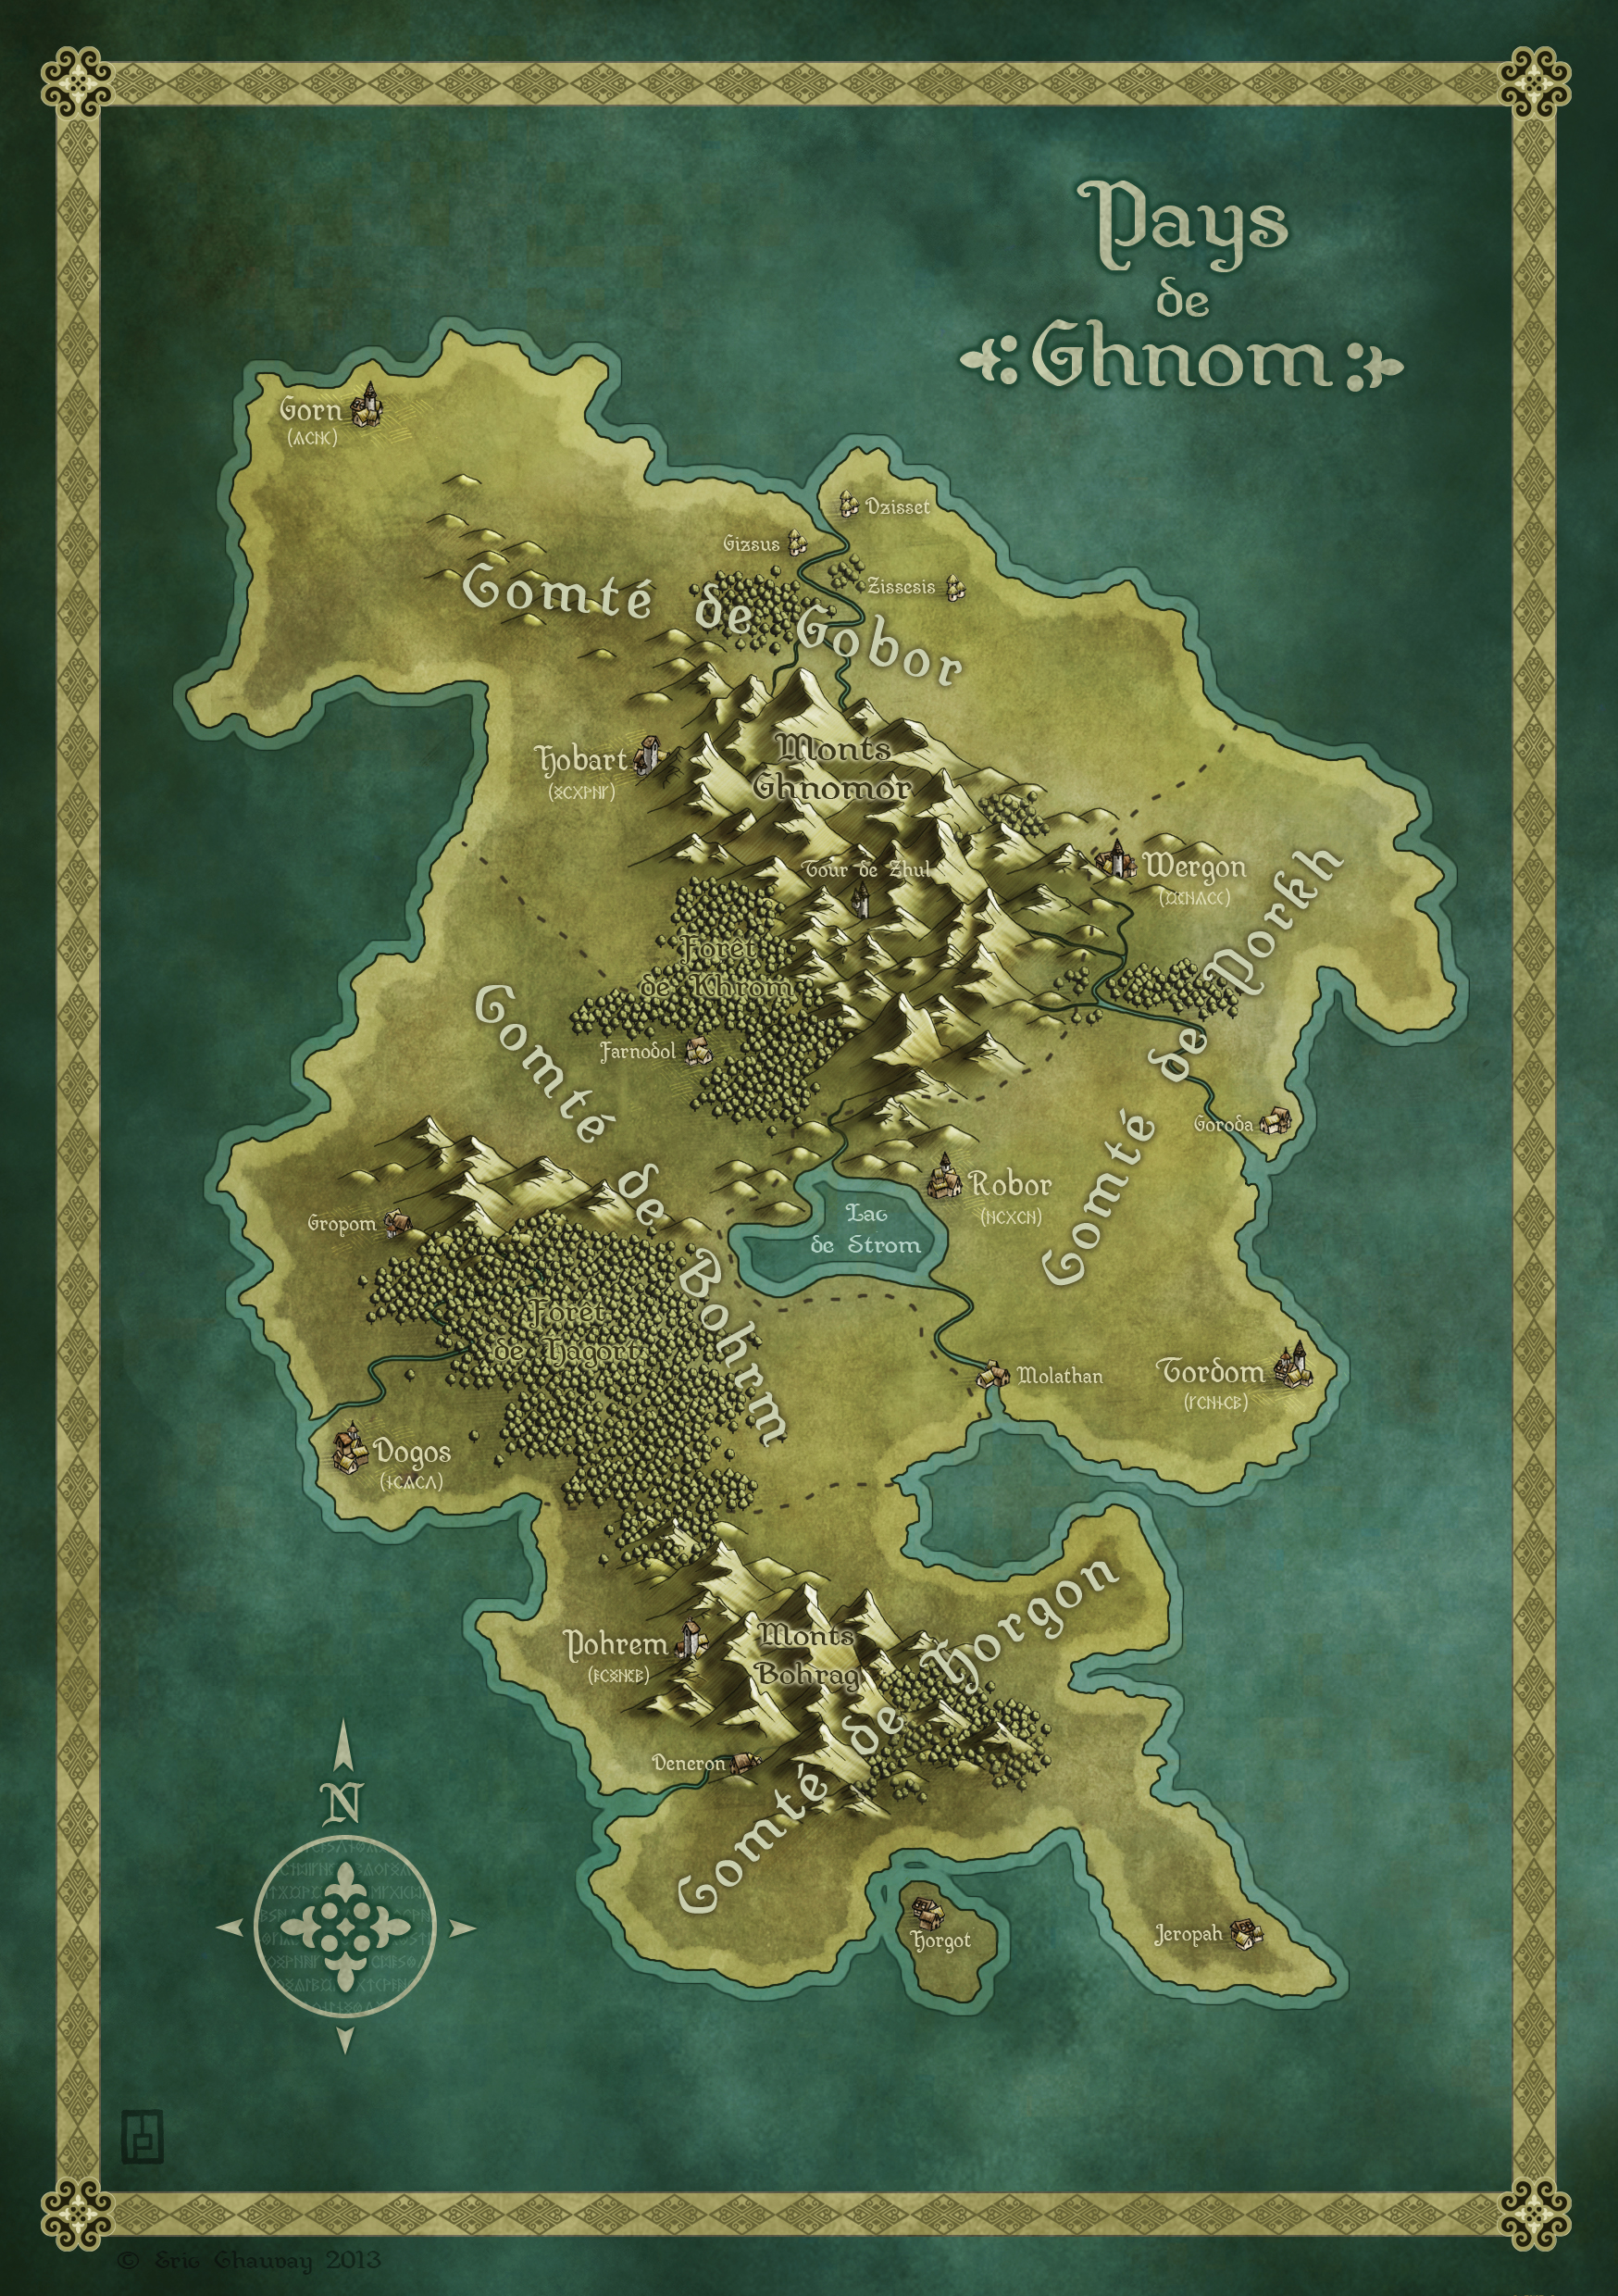 Land of Ghnom - Book project commission